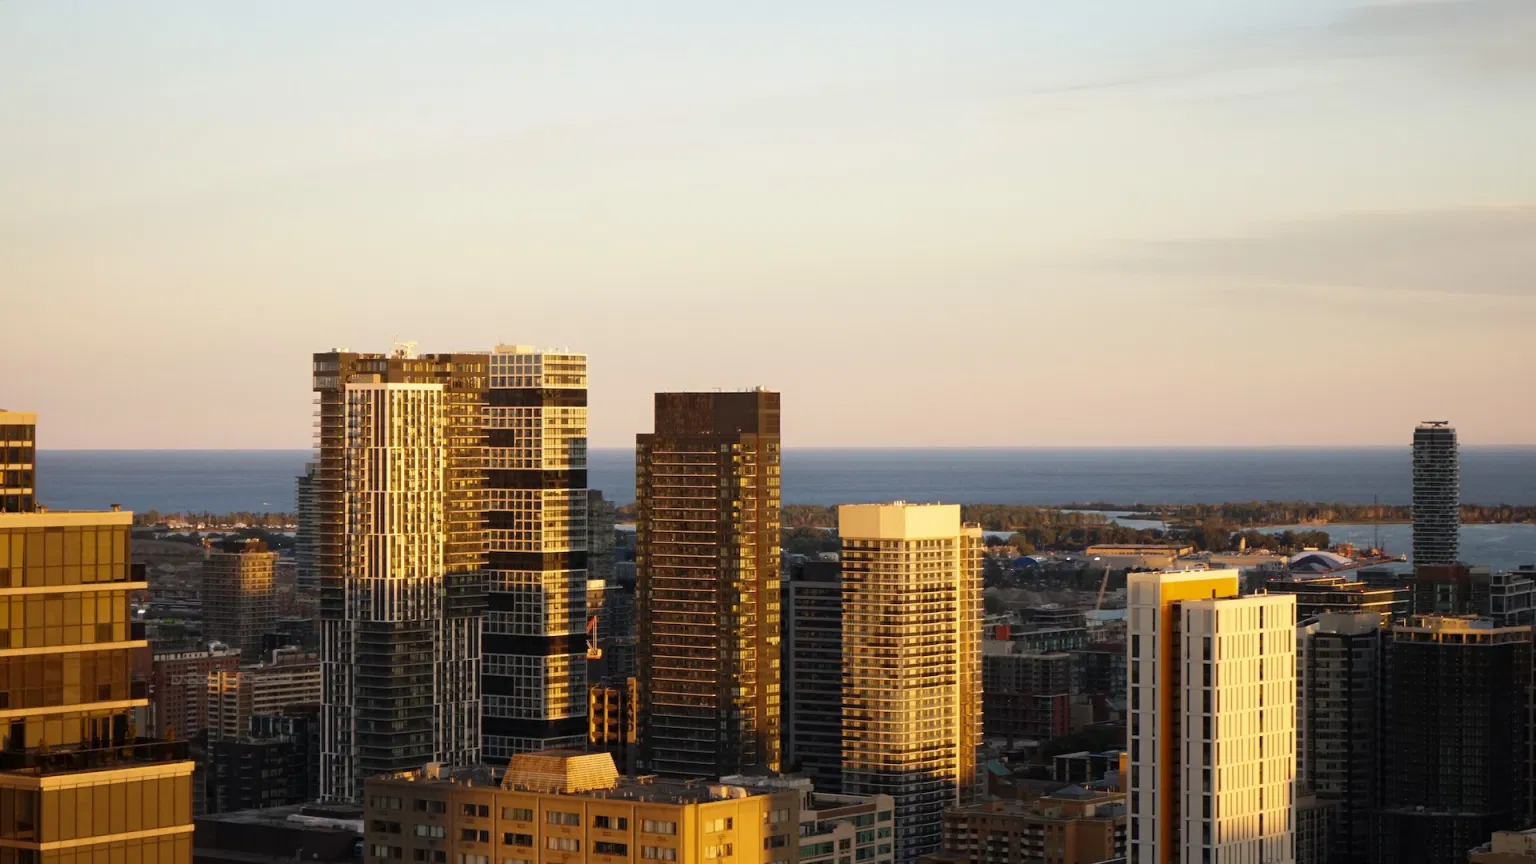 ONE OF CANADA'S BIGGEST REAL ESTATE BULLS ISN'T SO BULLISH ON CONDOS